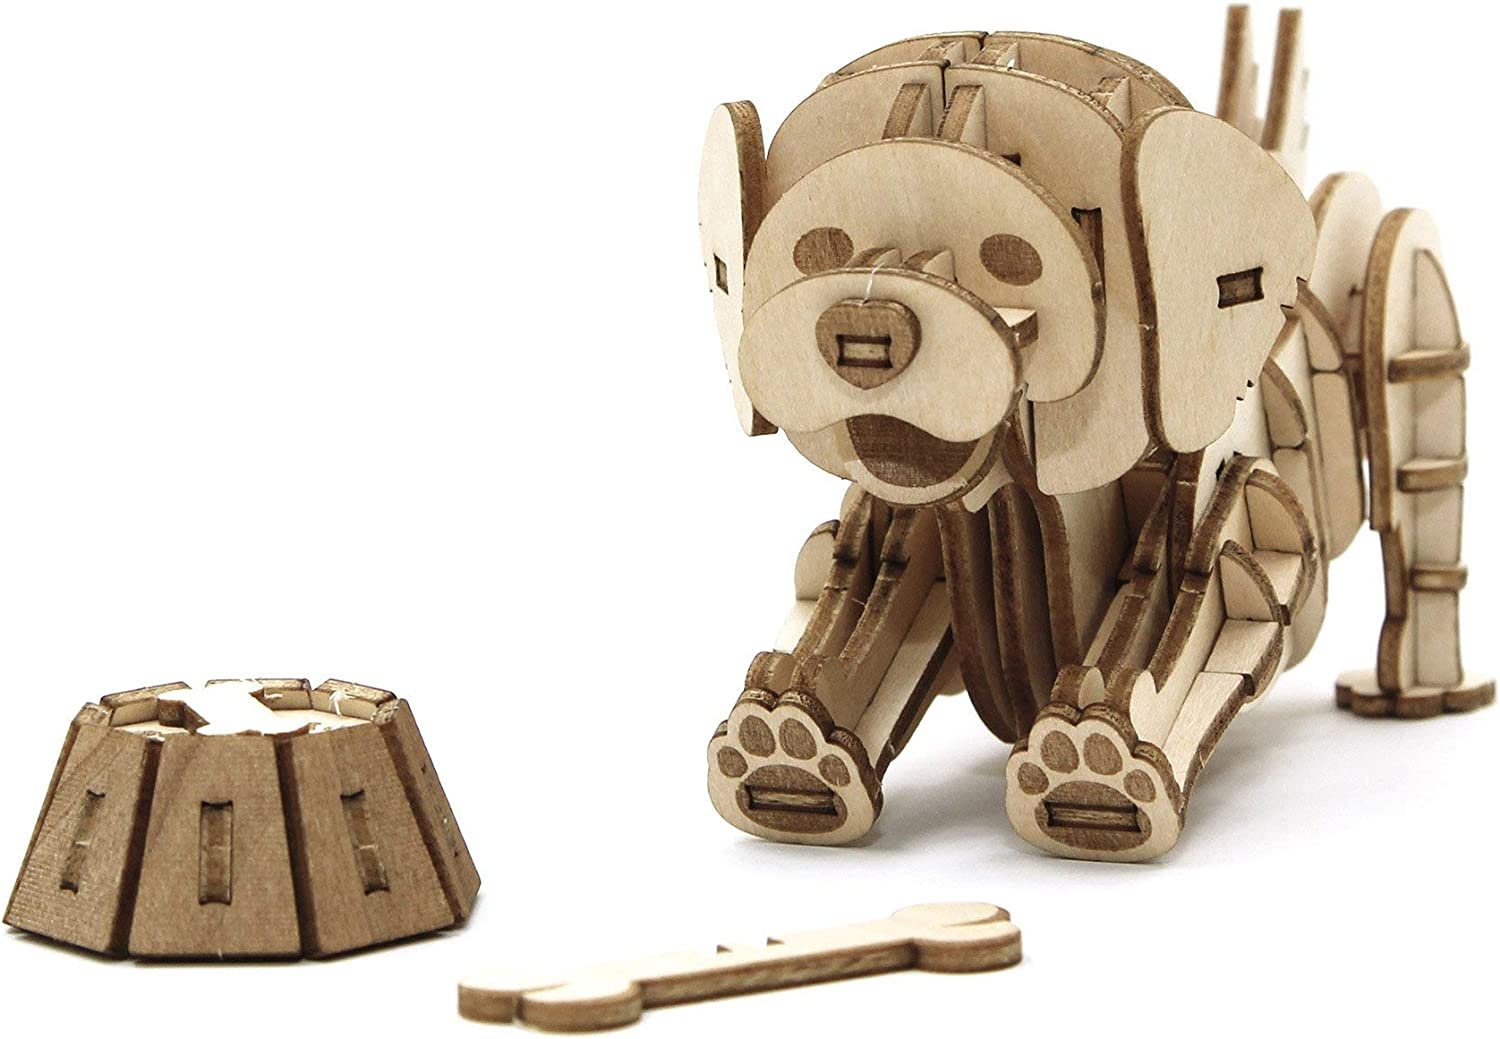 Duck Team Green JIGZLE 2mm Plywood Wooden 3D Puzzle for Teens and Adults Mechanical Models Kits Pets Collection